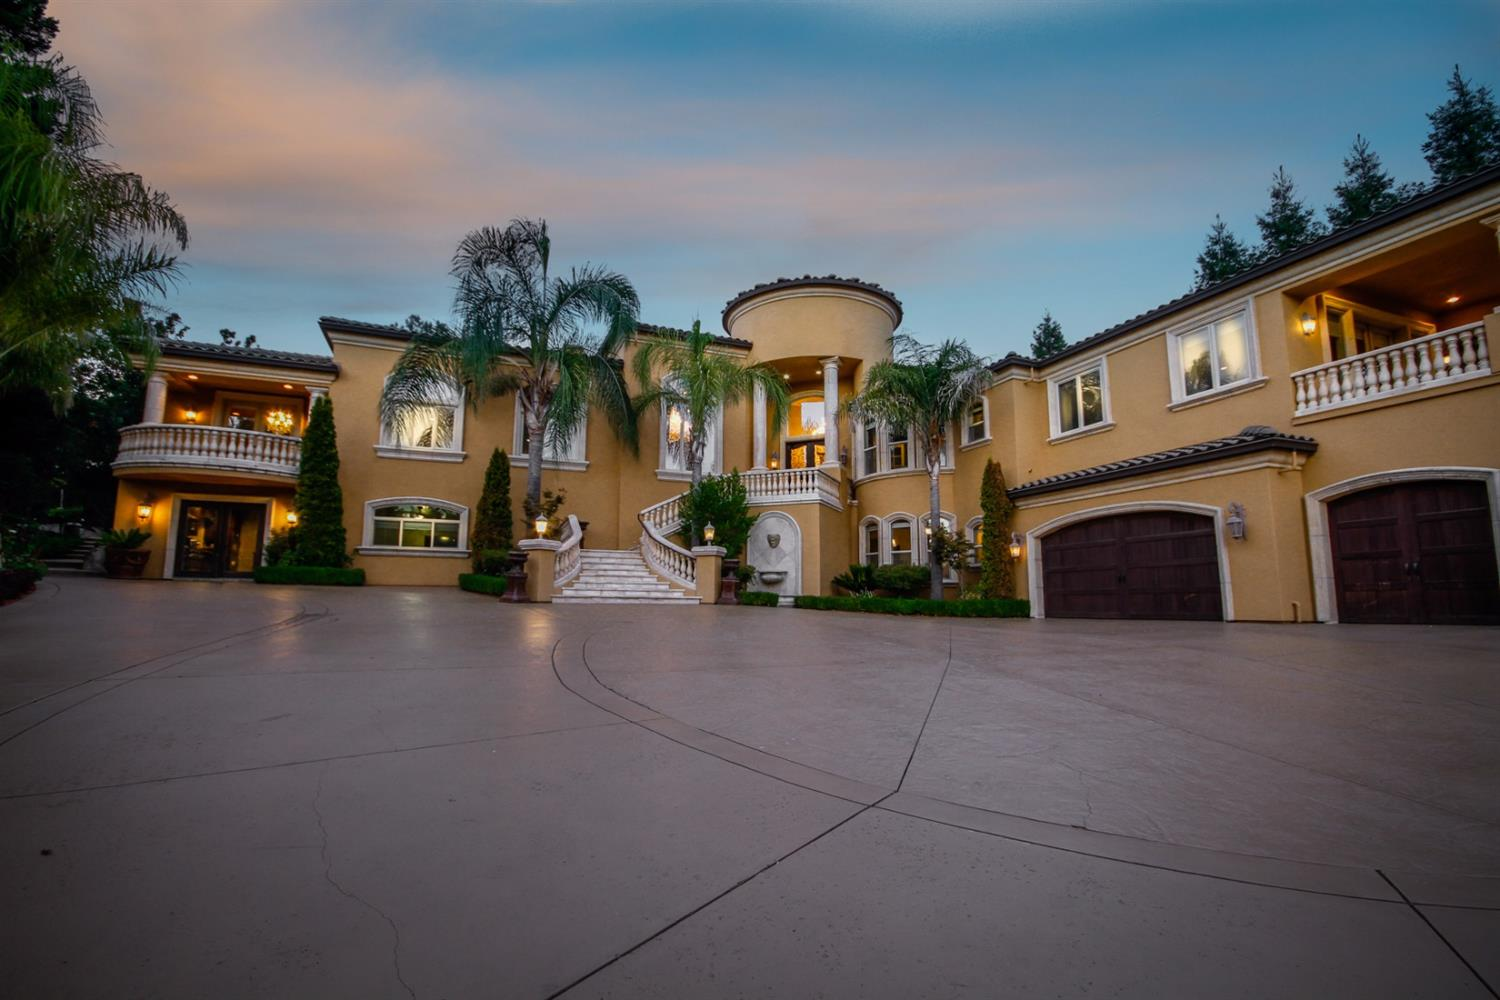 Amazing estate in Granite Bay, enjoy the luxurious lifestyle of Los Lagos. the private gated drive way provides plenty of privacy. Custom touches throughout, natural stones, cathedral ceilings, formal living, formal dining room, spacious great room, gourmet kitchen, top of the line appliances large island. 6 bedroom 8 baths.  Beautiful backyard with stunning views, Pool & spa built in BBQ and pizza oven.